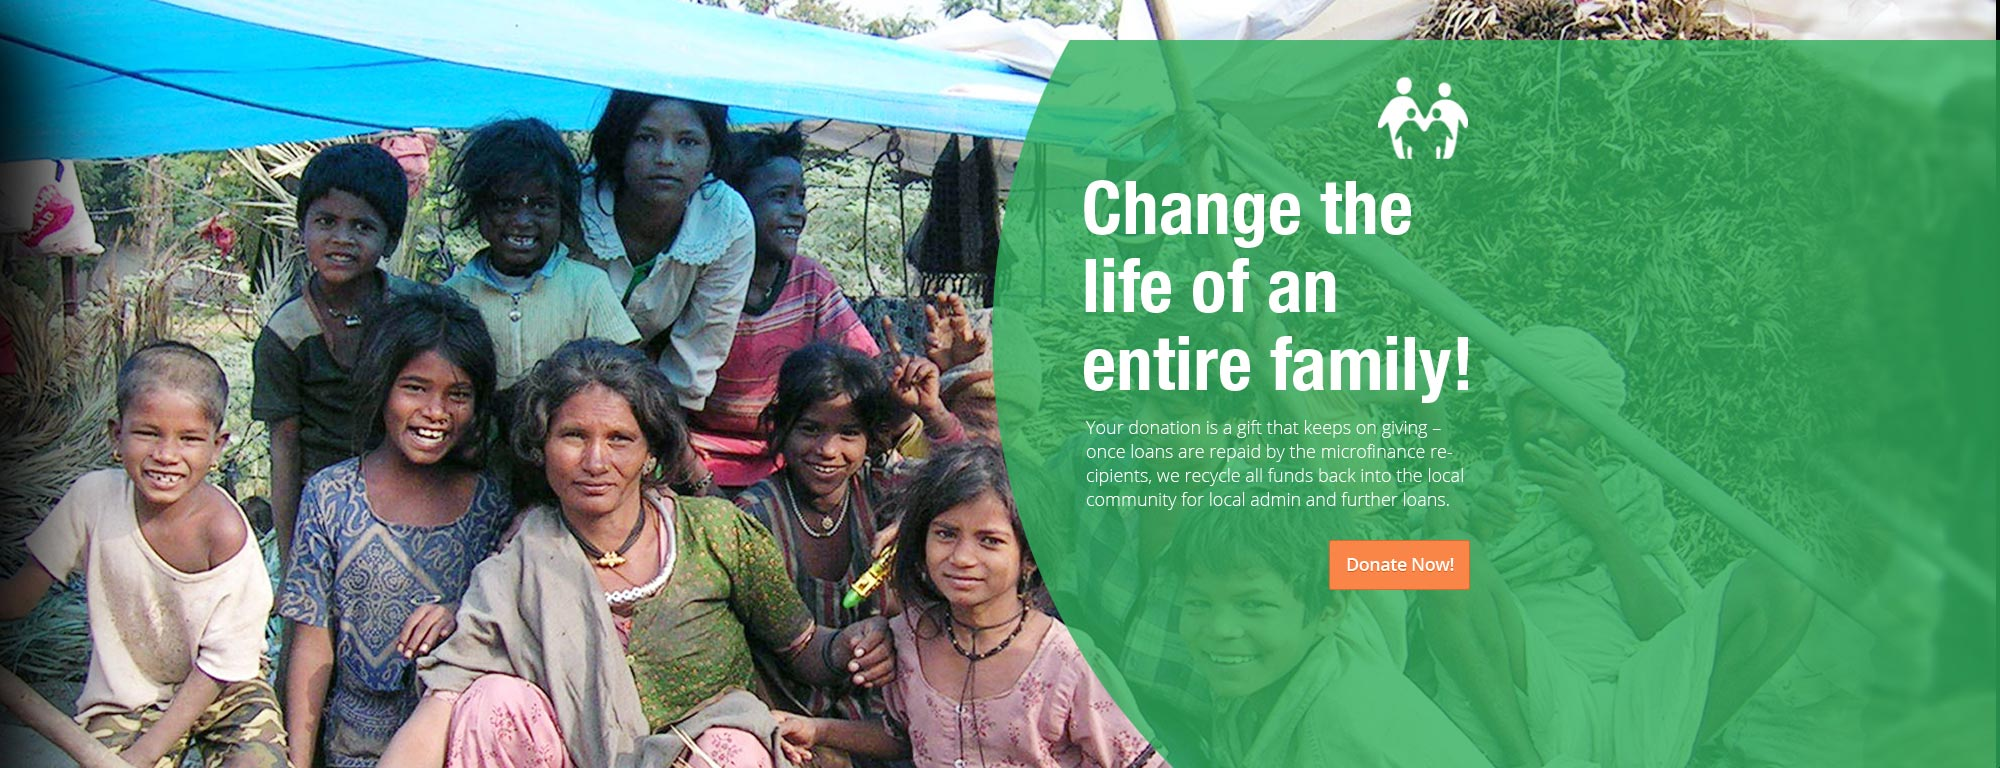 Change the life of an entire family